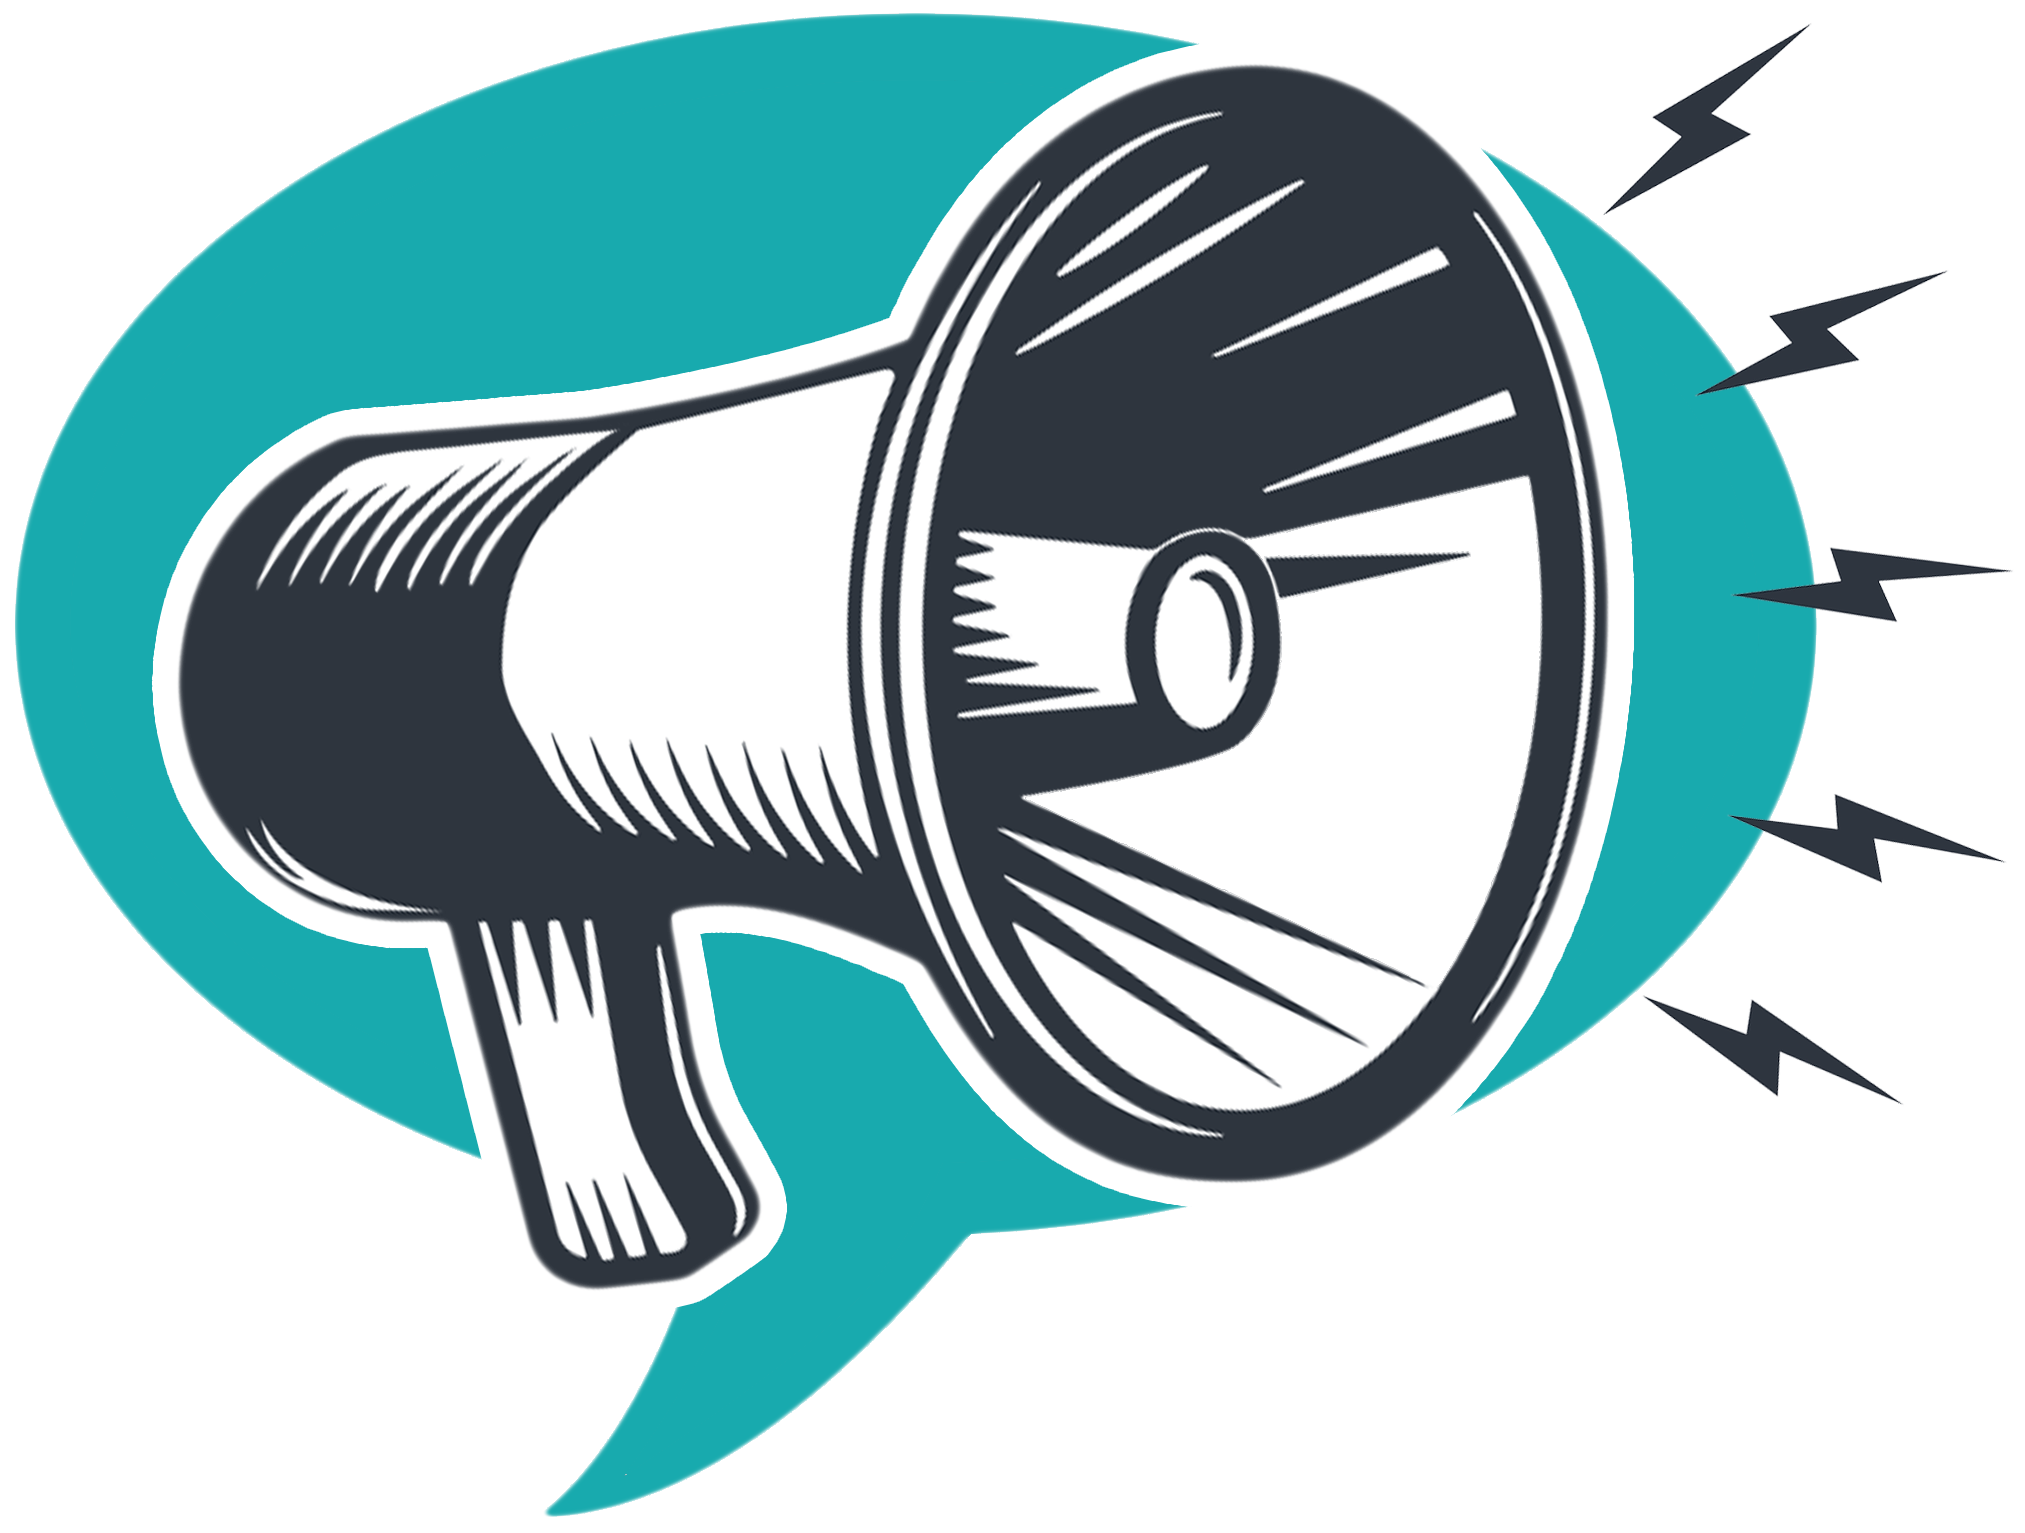 Movies clipart megaphone. Image result for action